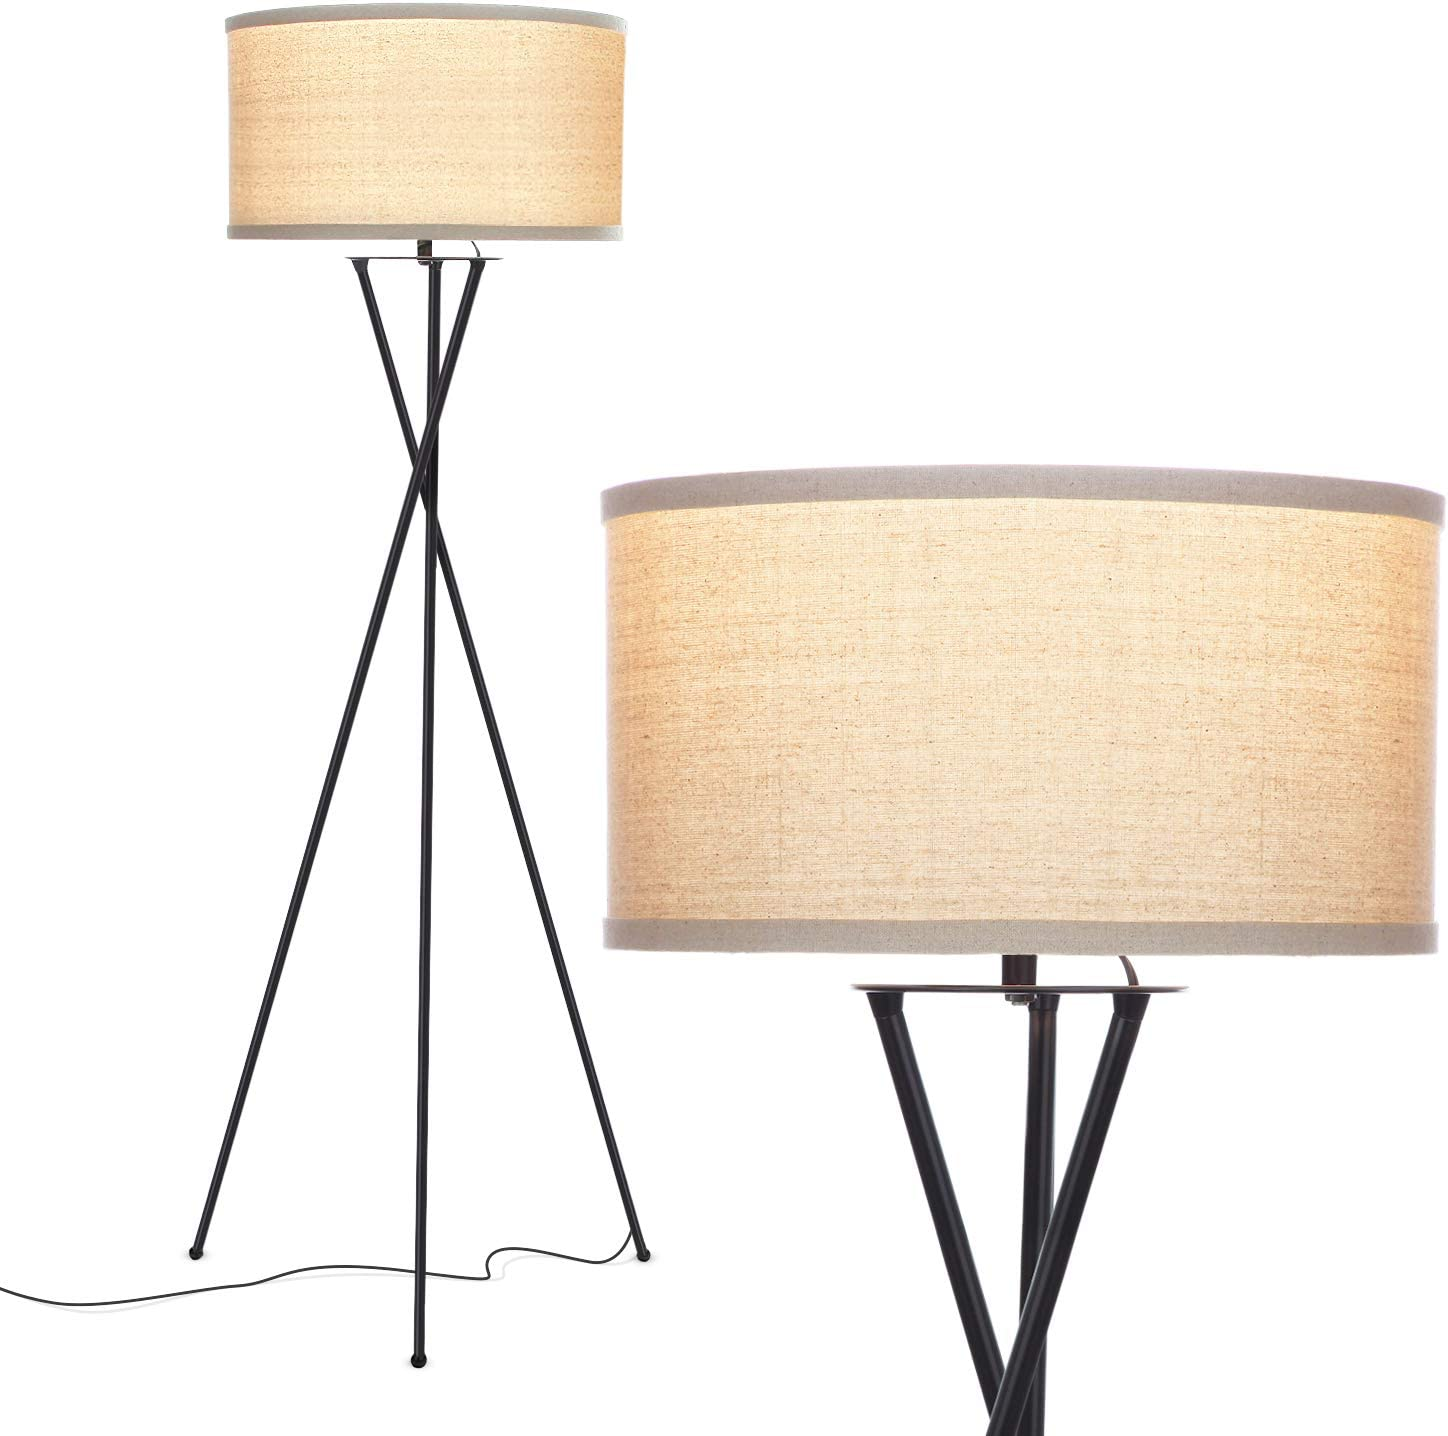 Amazon.com: Brightech Jaxon Tripod LED Floor Lamp – Mid Century Modern,  Living Room Standing Light – Tall, Contemporary Drum Shade Lamp for Bedroom  or Office – Black: Home Improvement Amazon.com